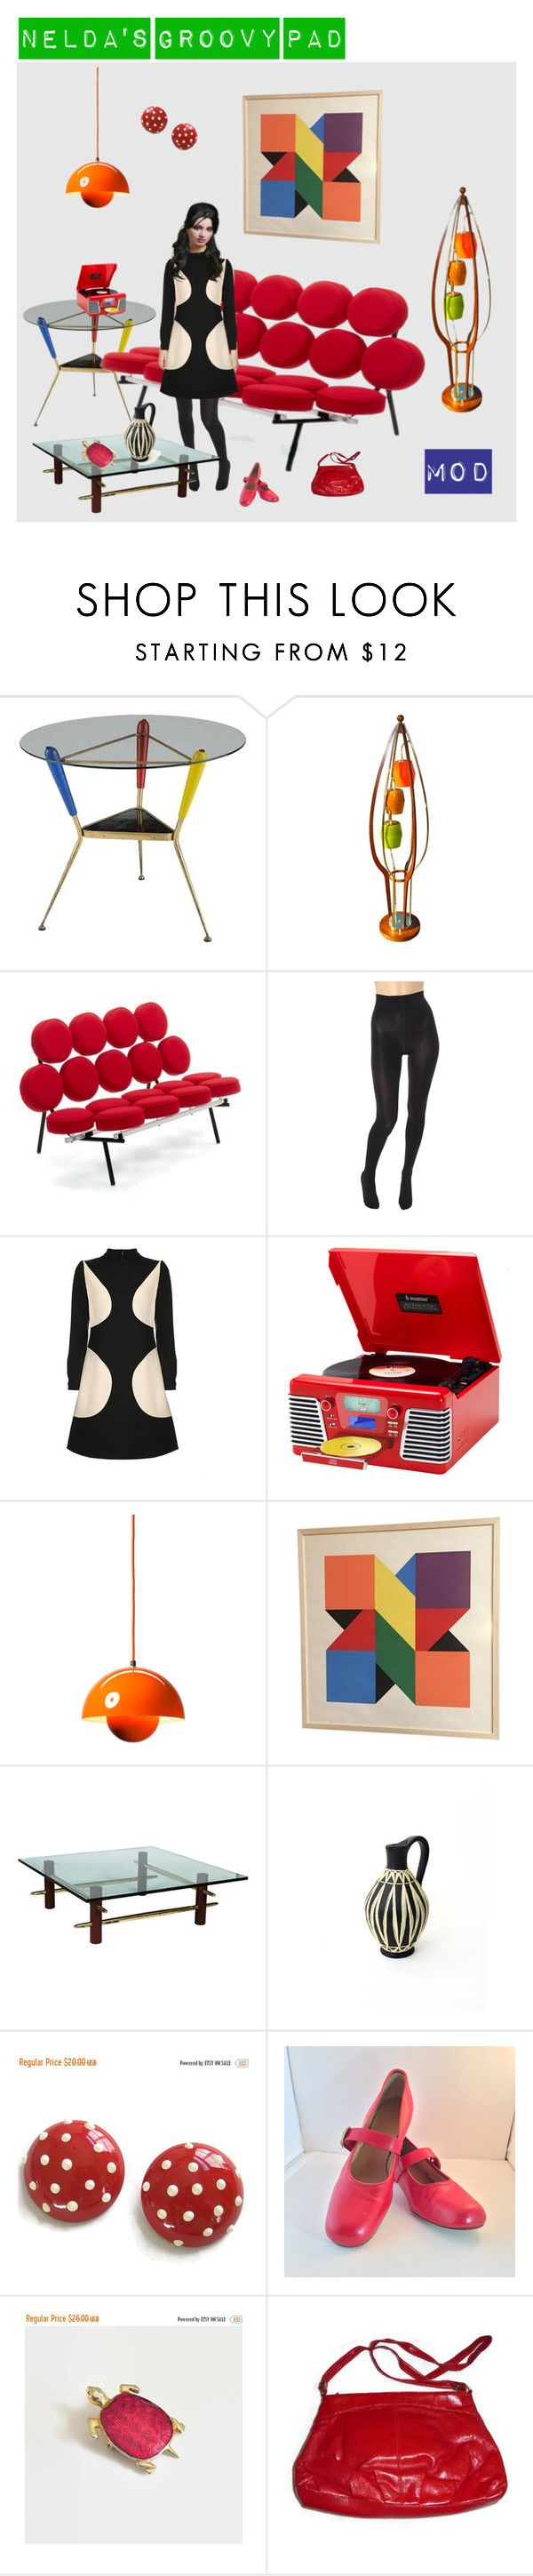 """""""Nelda's Groovy Pad"""" by anna-ragland ❤ liked on Polyvore featuring Herman Miller, Wolford, Emanuel Ungaro, Retrò, &Tradition, T.H. Robsjohn-Gibbings and vintage"""